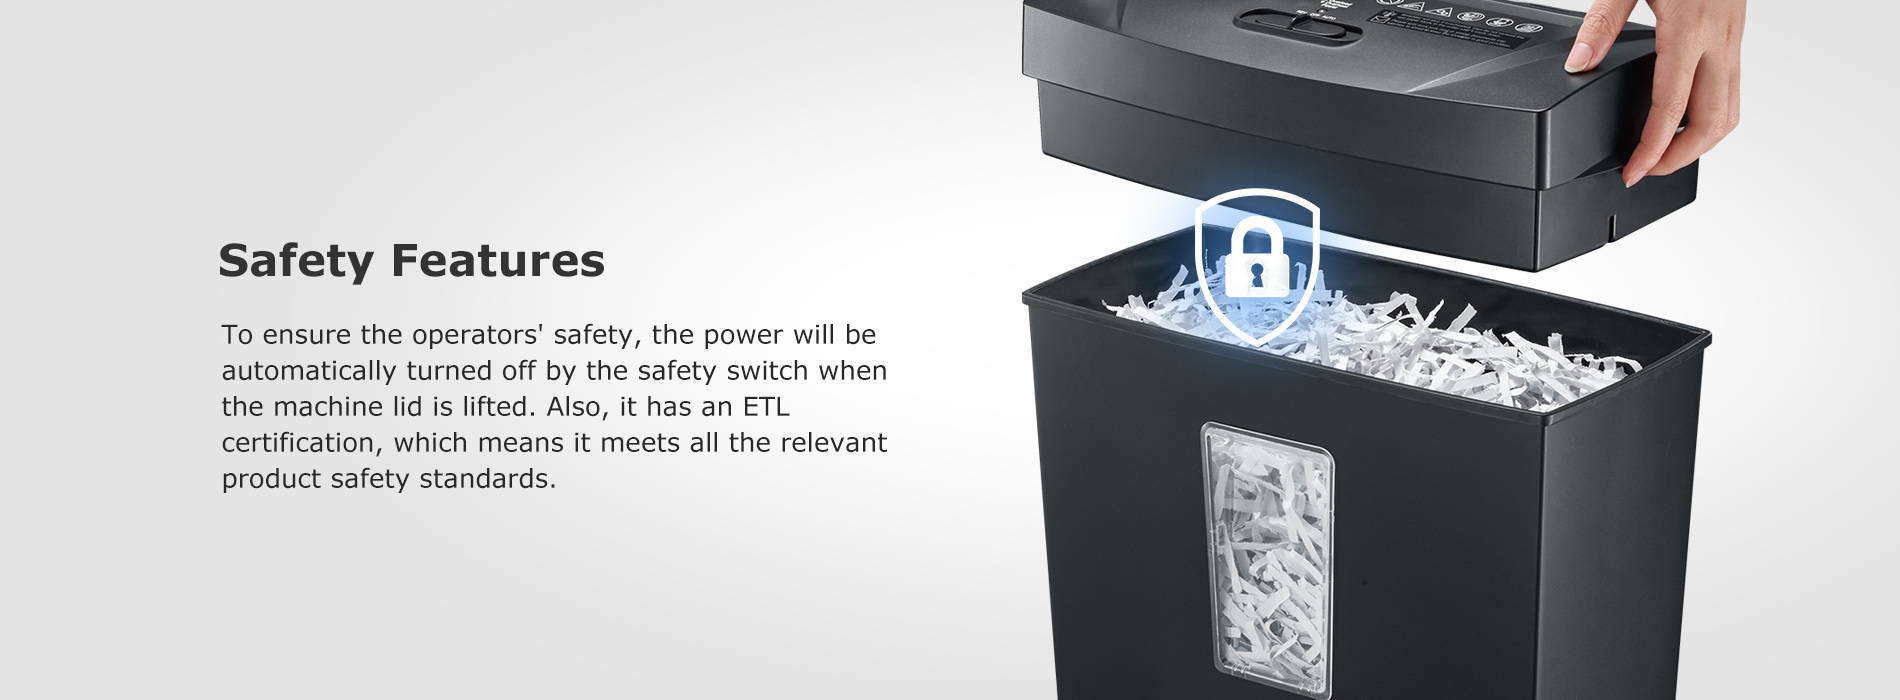 Safety Features To ensure the operators' safety, the power will be automatically turned off by the safety switch when the machine lid is lifted. Also, it has an ETL certification, which means it meets all the relevant product safety standards.